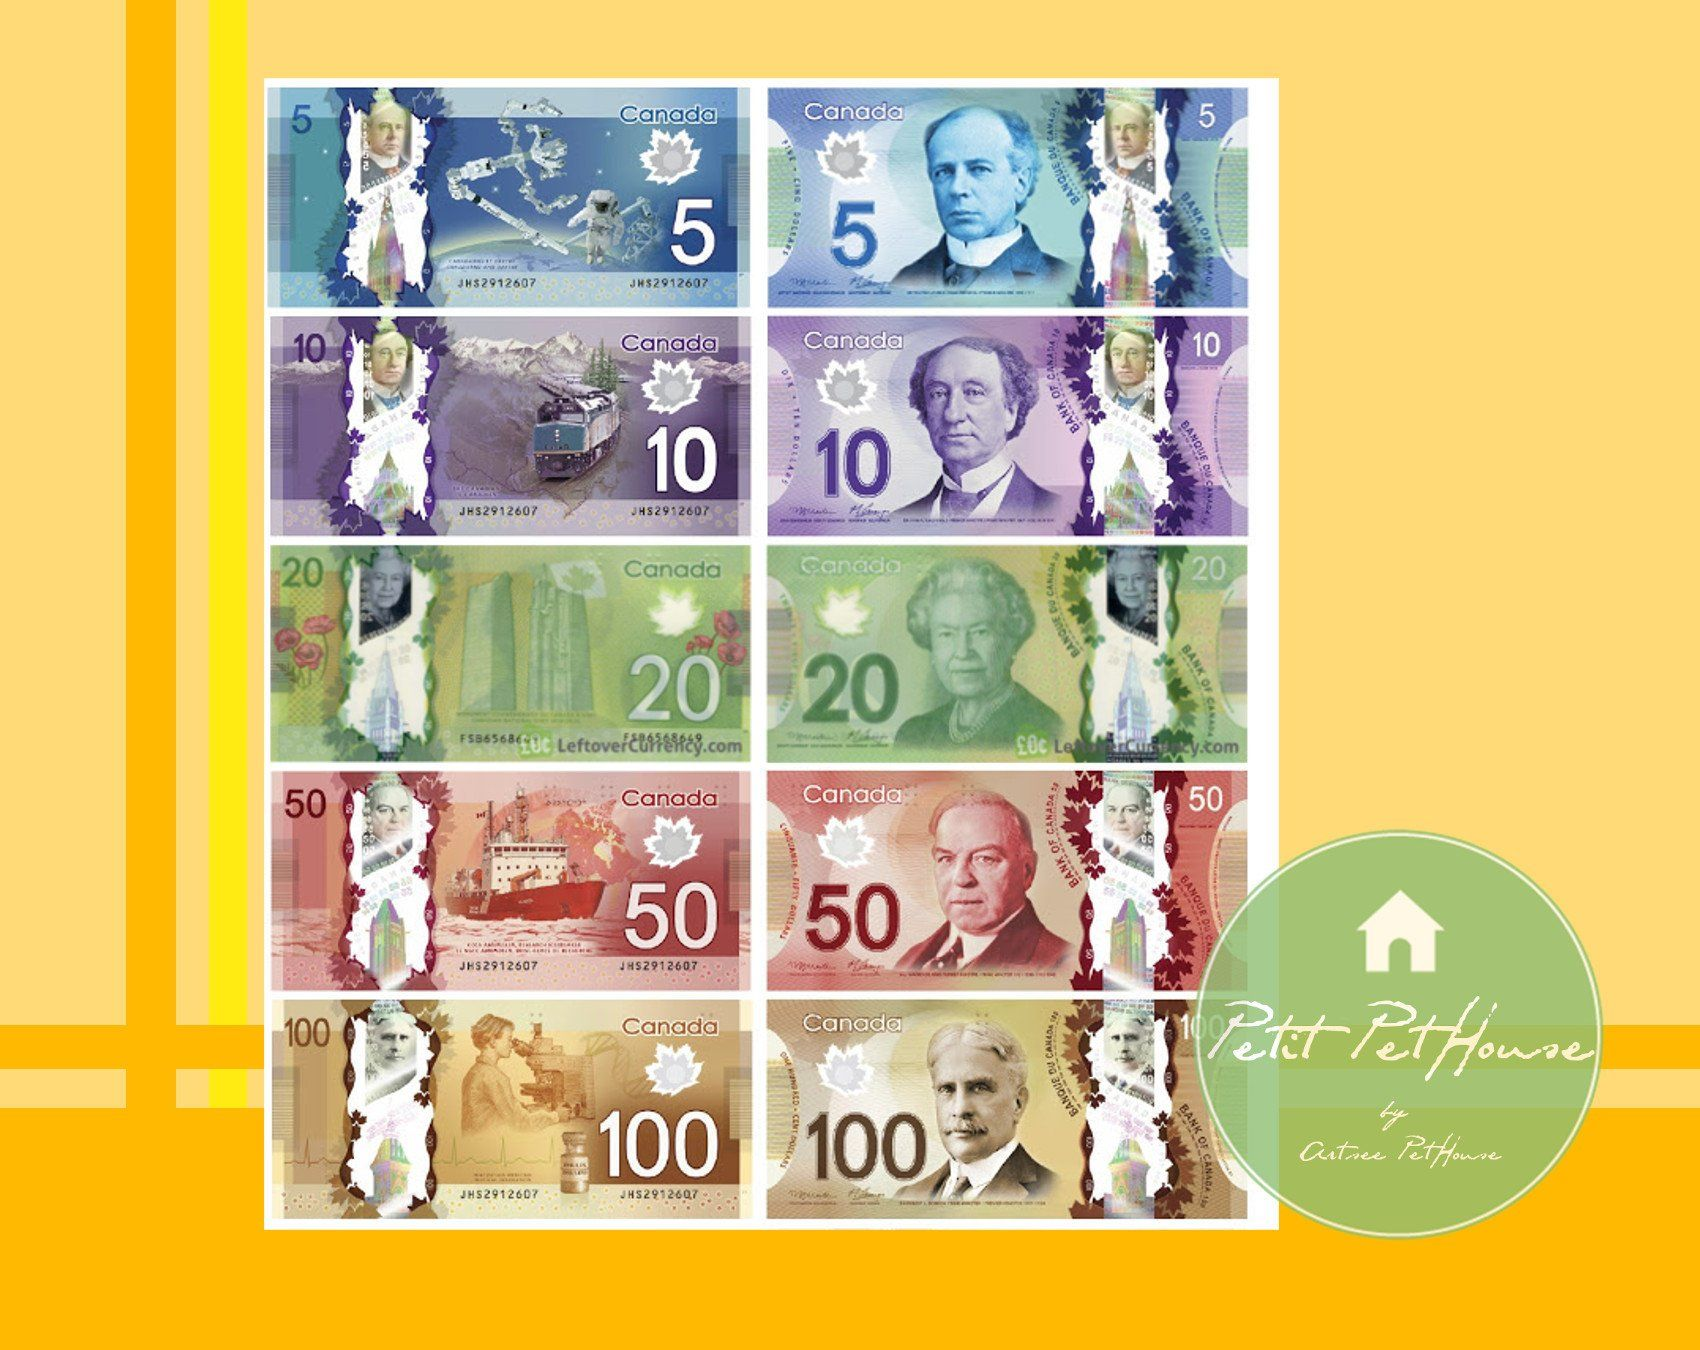 Printable 1 6 Miniature Scale Canadian Dollar Banknote